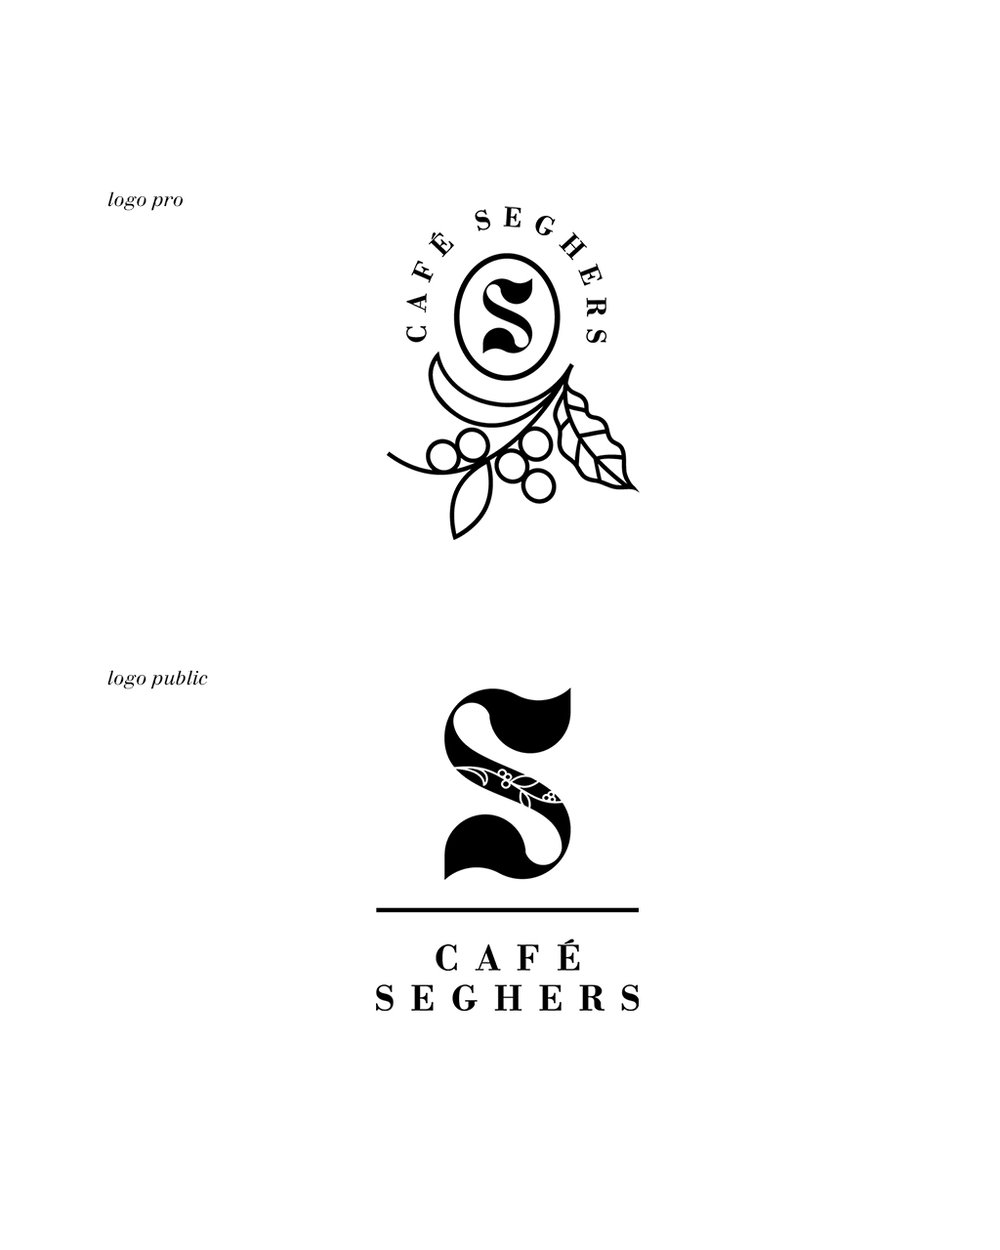 Café Seghers, Le Havre, France / coffee roaster